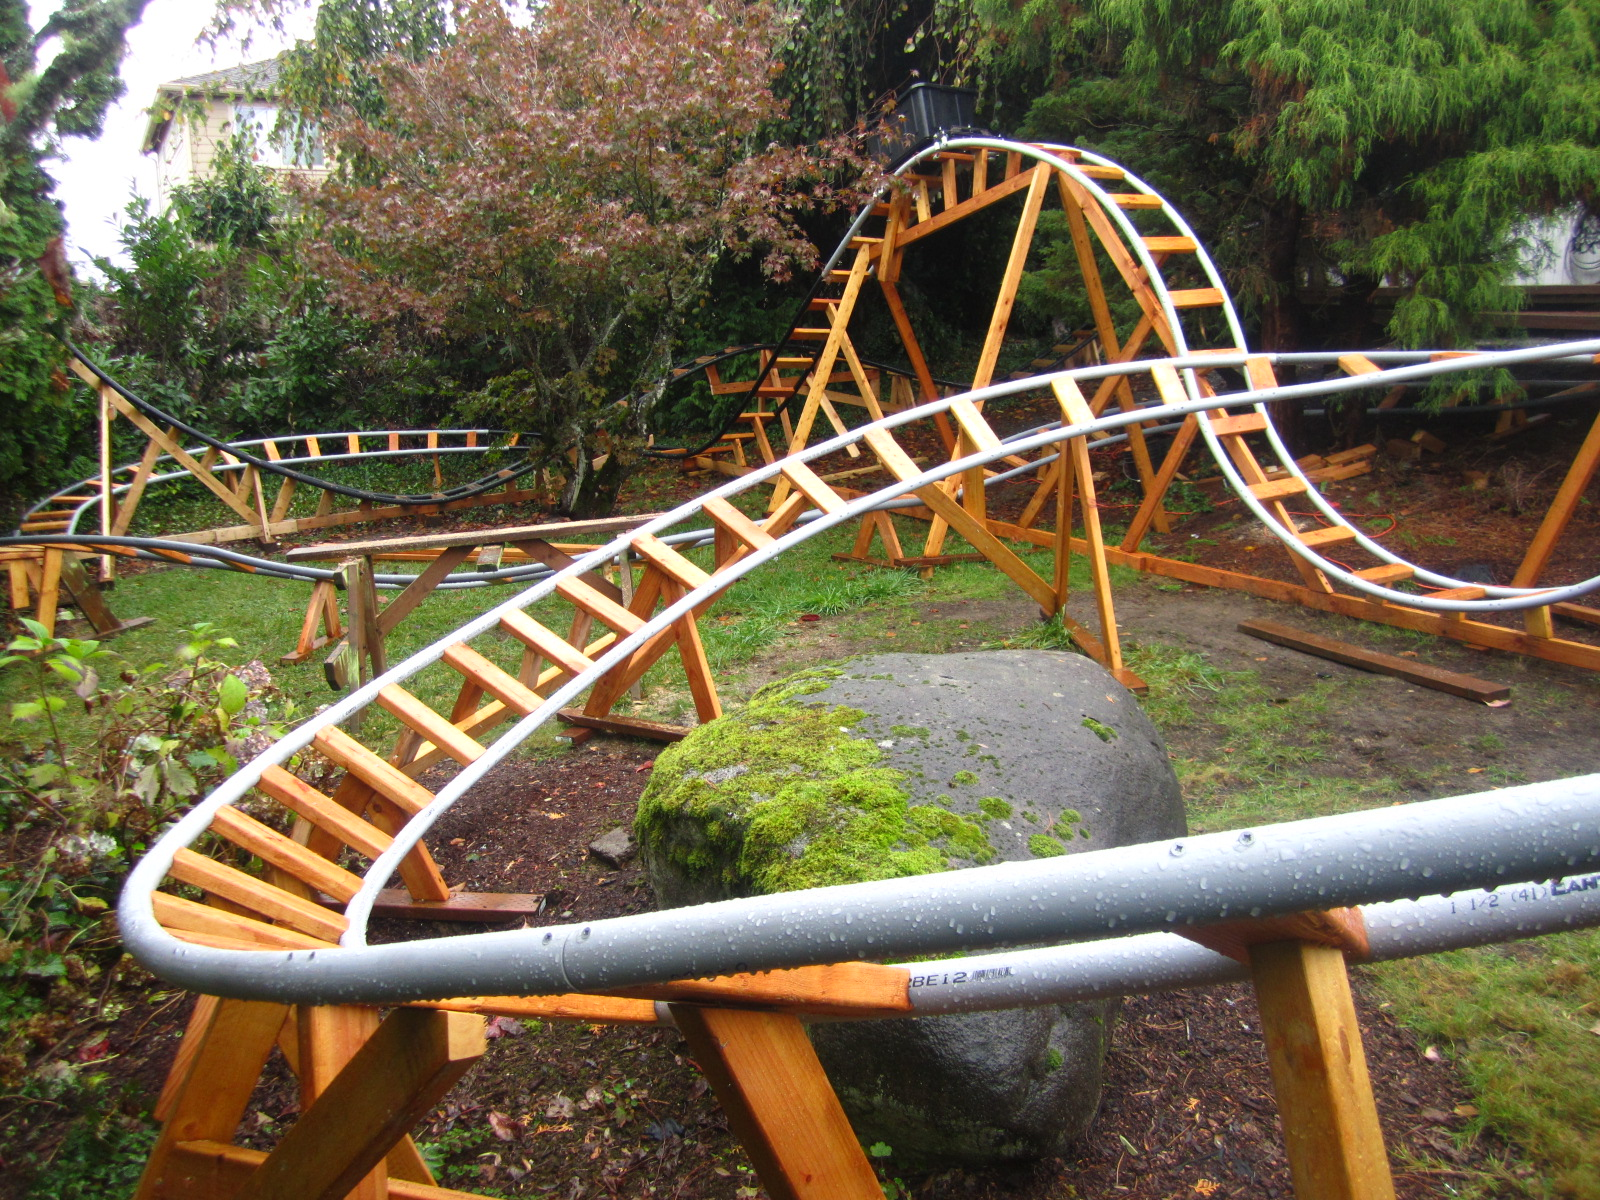 Backyard Roller Coaster Plans : Designing a Safe Backyard Roller Coaster with Paul Gregg  Coaster101